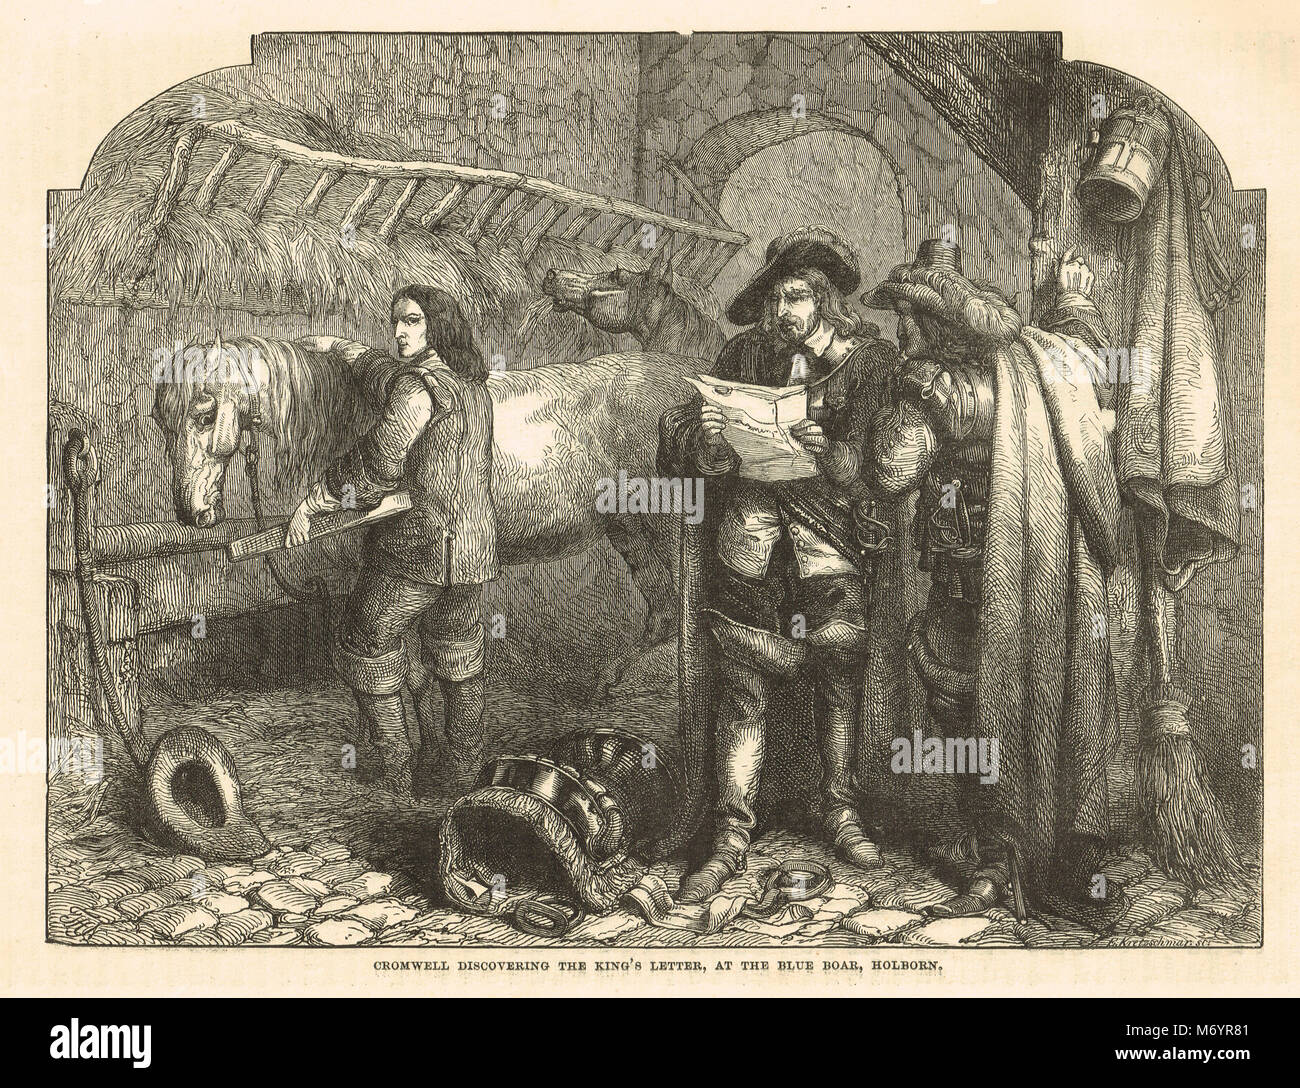 Oliver Cromwell discovering the King's letter, The Blue Boar, Holborn, 1647 - Stock Image